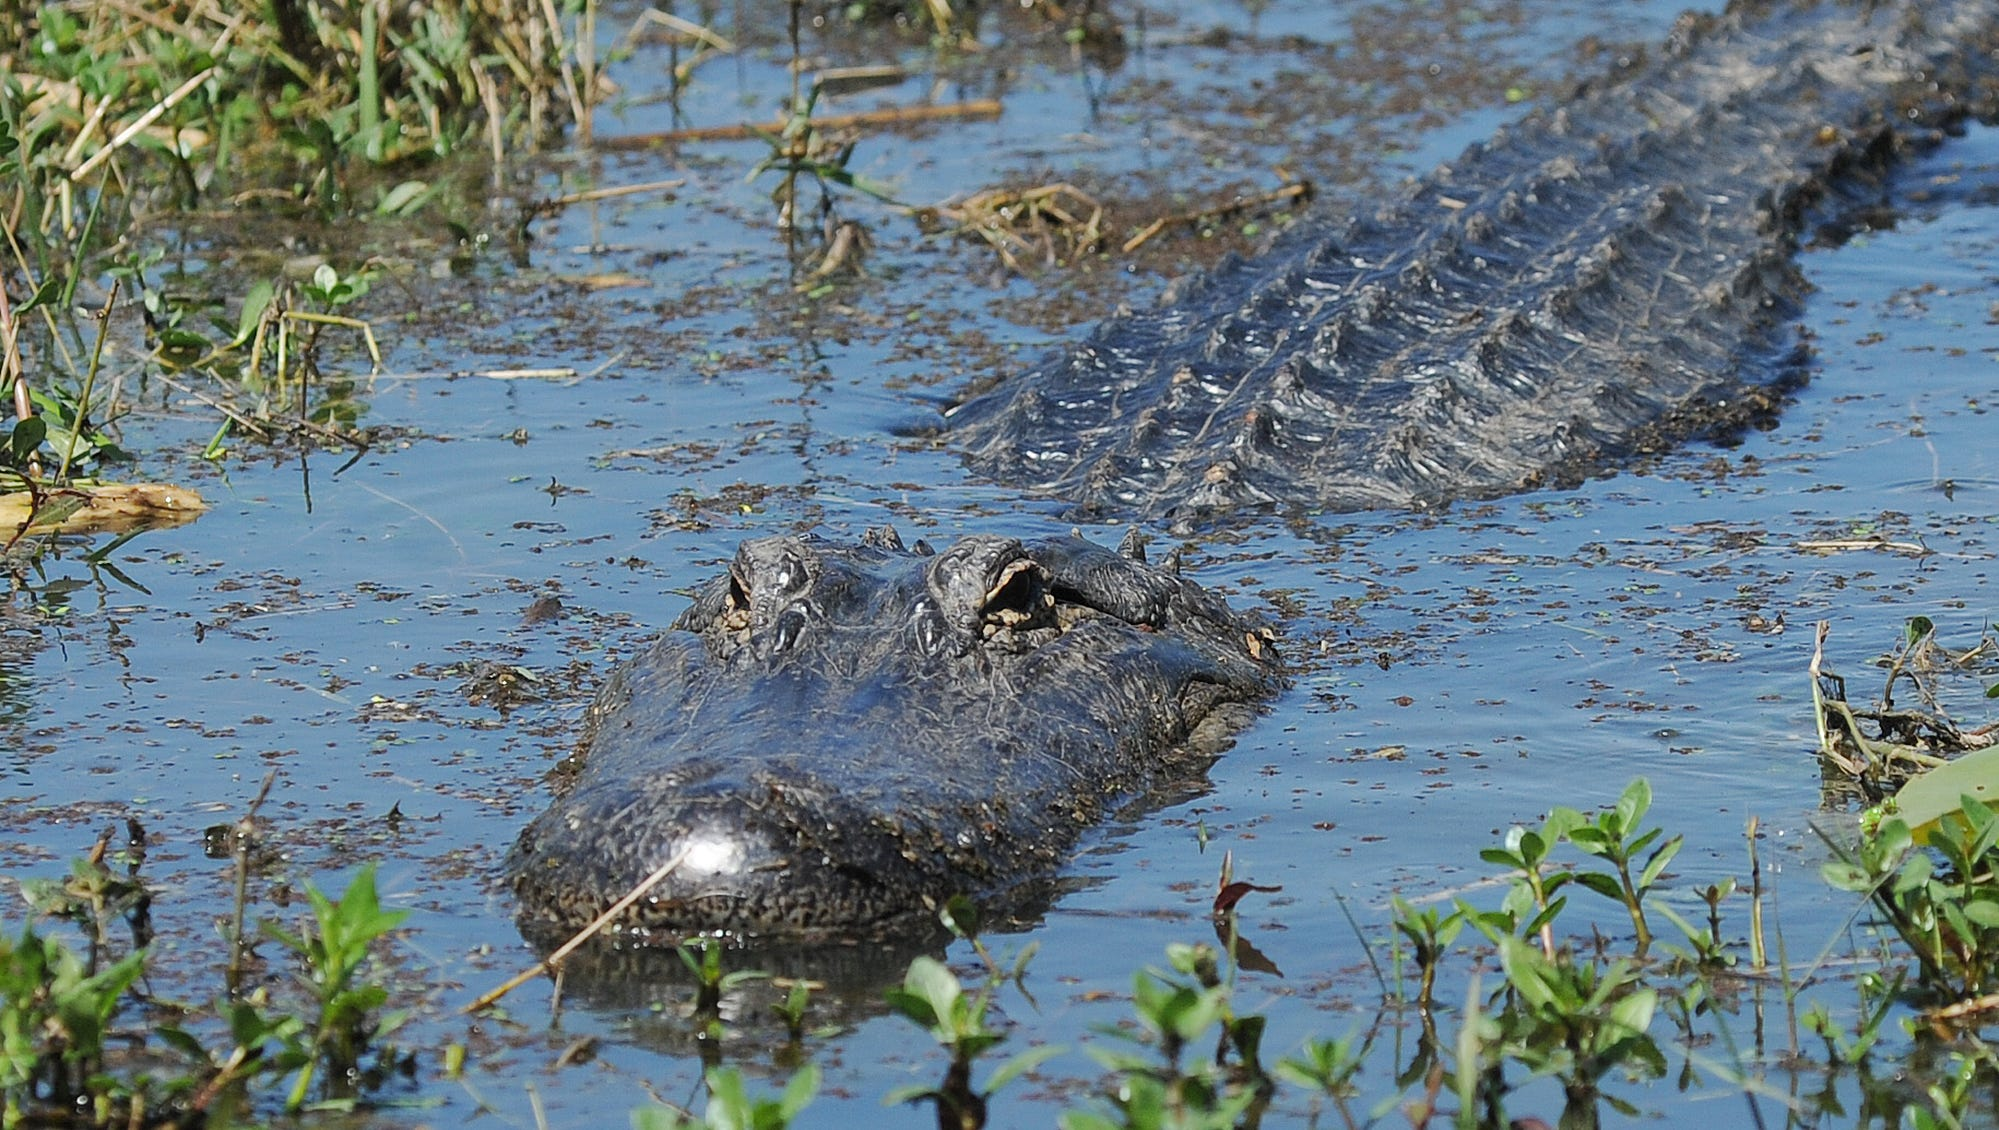 How to Avoid an Alligator Attack